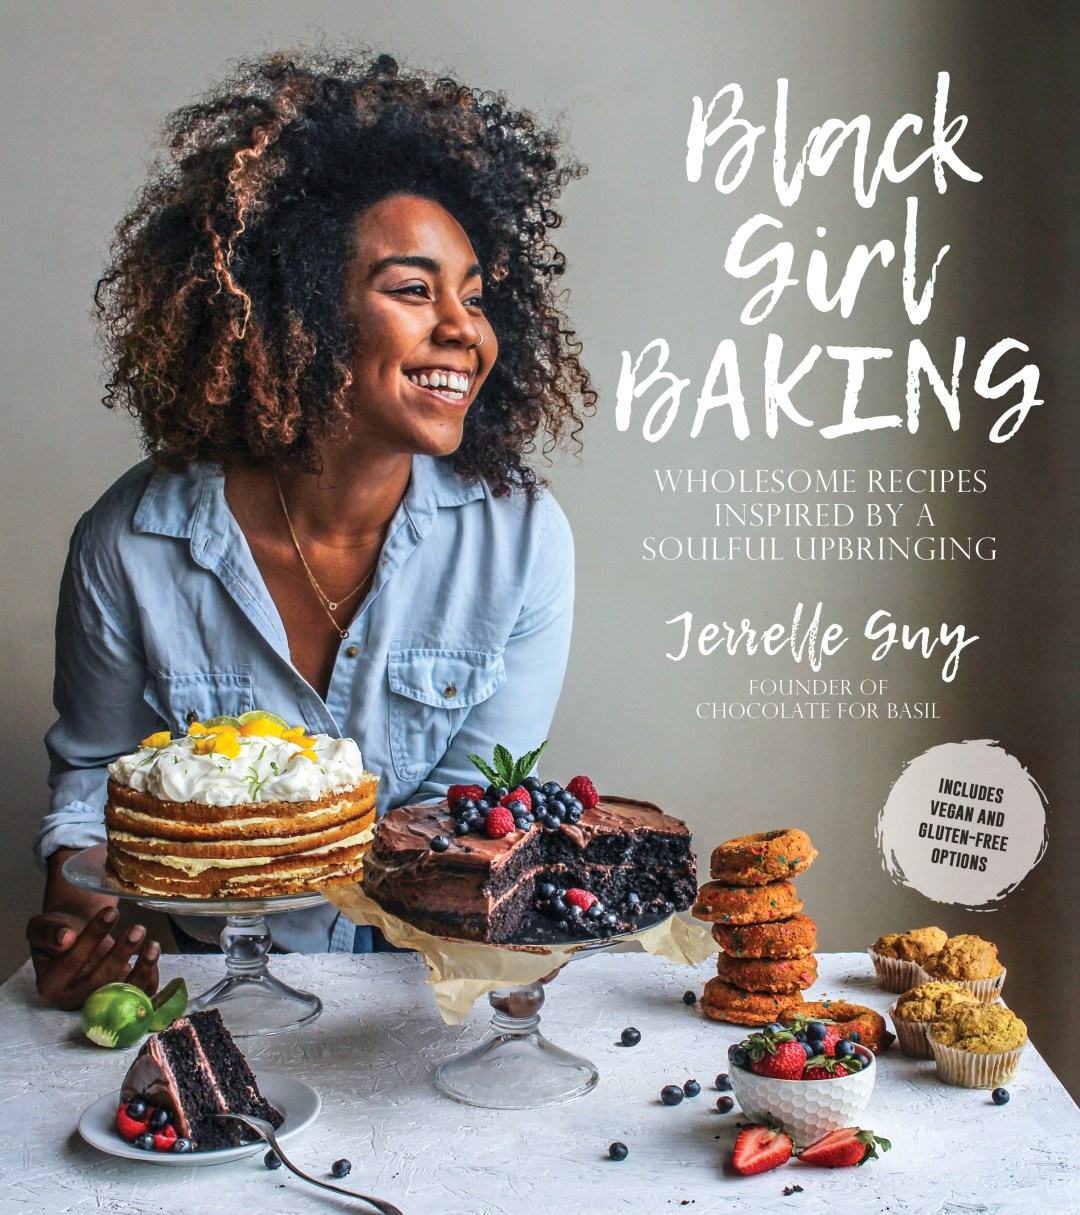 Black-Girl-Baking-Cover Black Southern Belle Travel: 11 Things to Do in Beaufort, SC